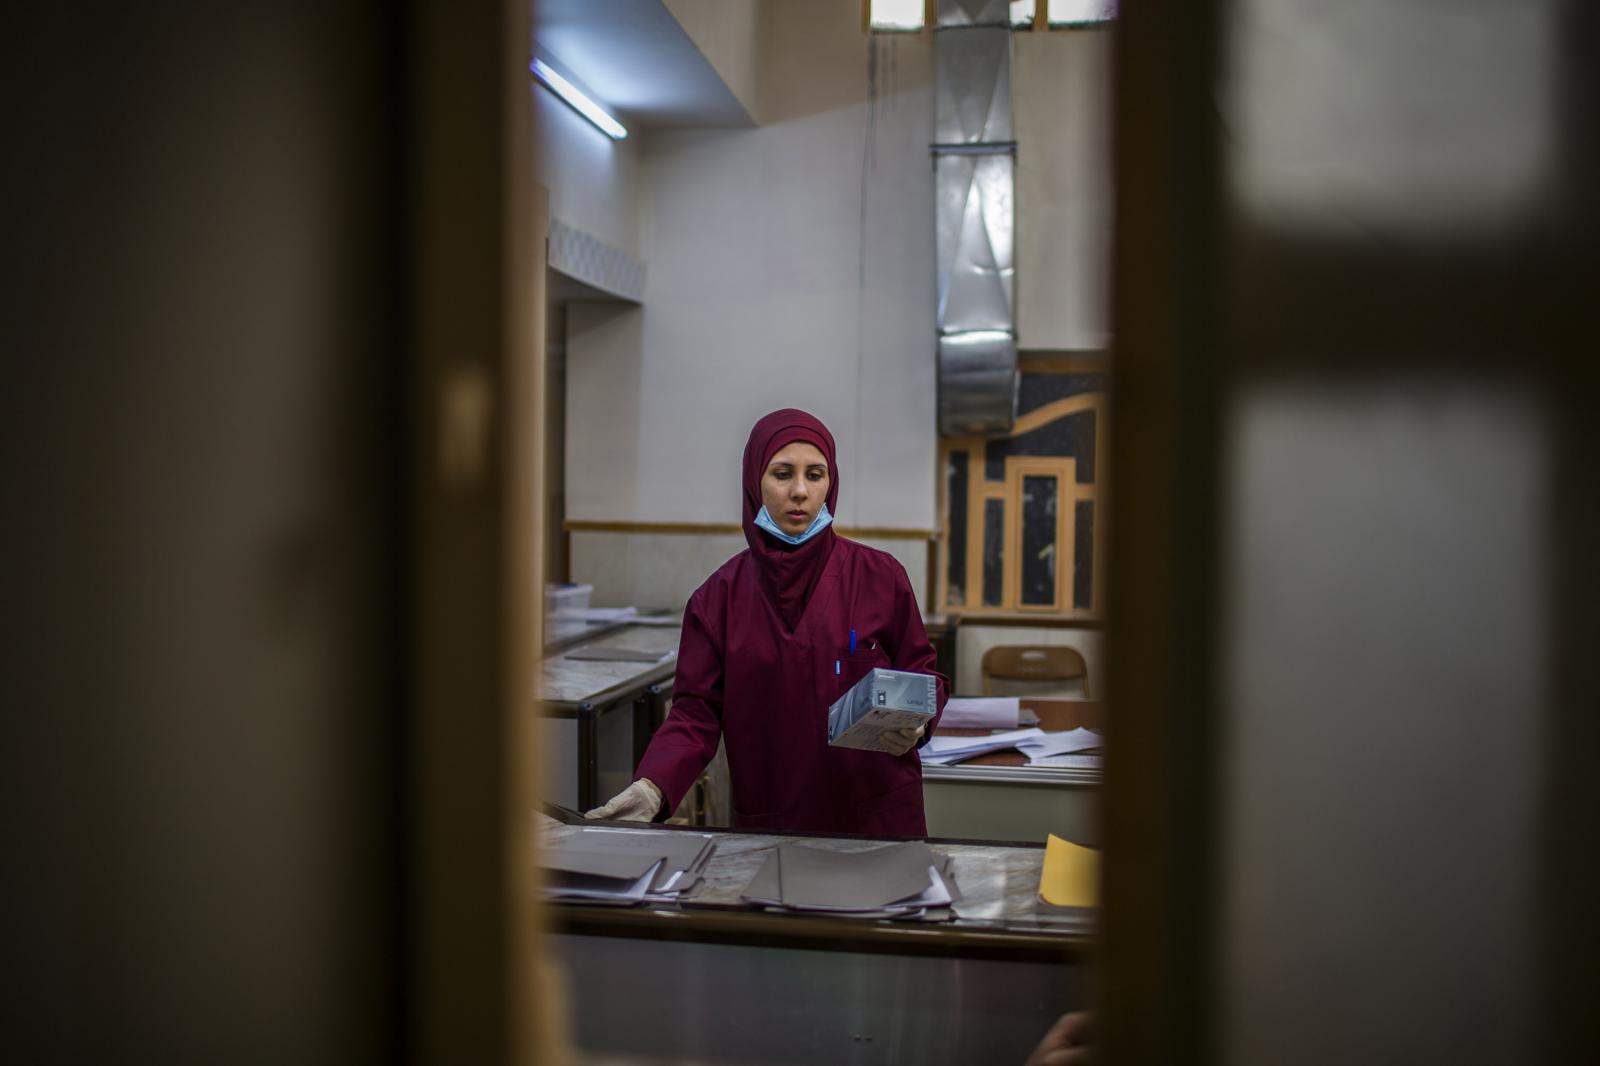 Sarah Younis works at the hospital. She has been working as a nurse for the latest 7 years. Hamdaniya, Iraq 2017. Diego Ibarra Sánchez for MSF